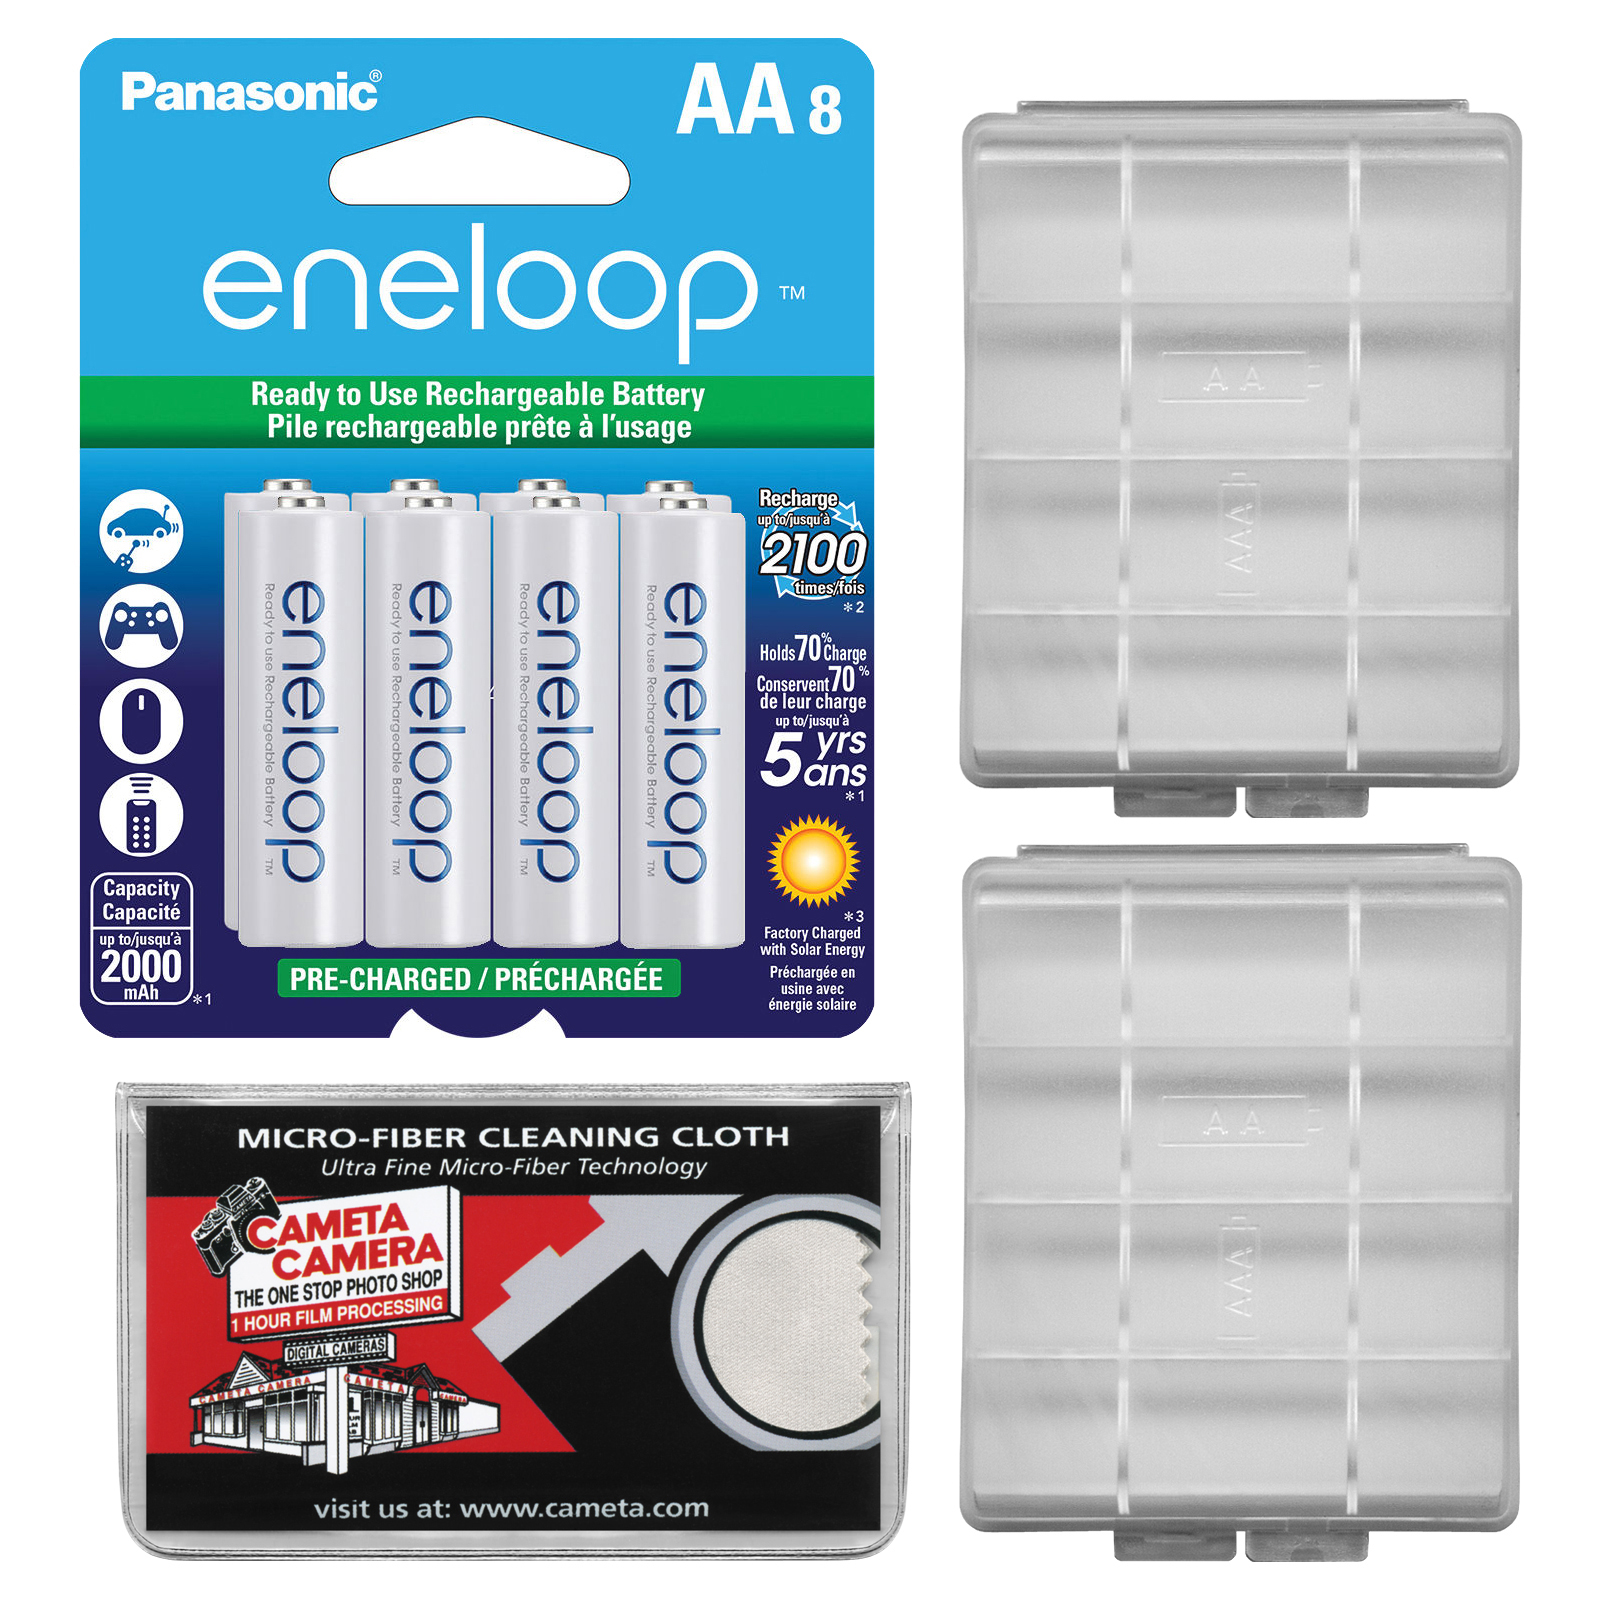 Panasonic eneloop (8) AA 2000mAh Pre-Charged NiMH Rechargeable Batteries with (2) AA Battery Cases + Microfiber Cleaning Cloth